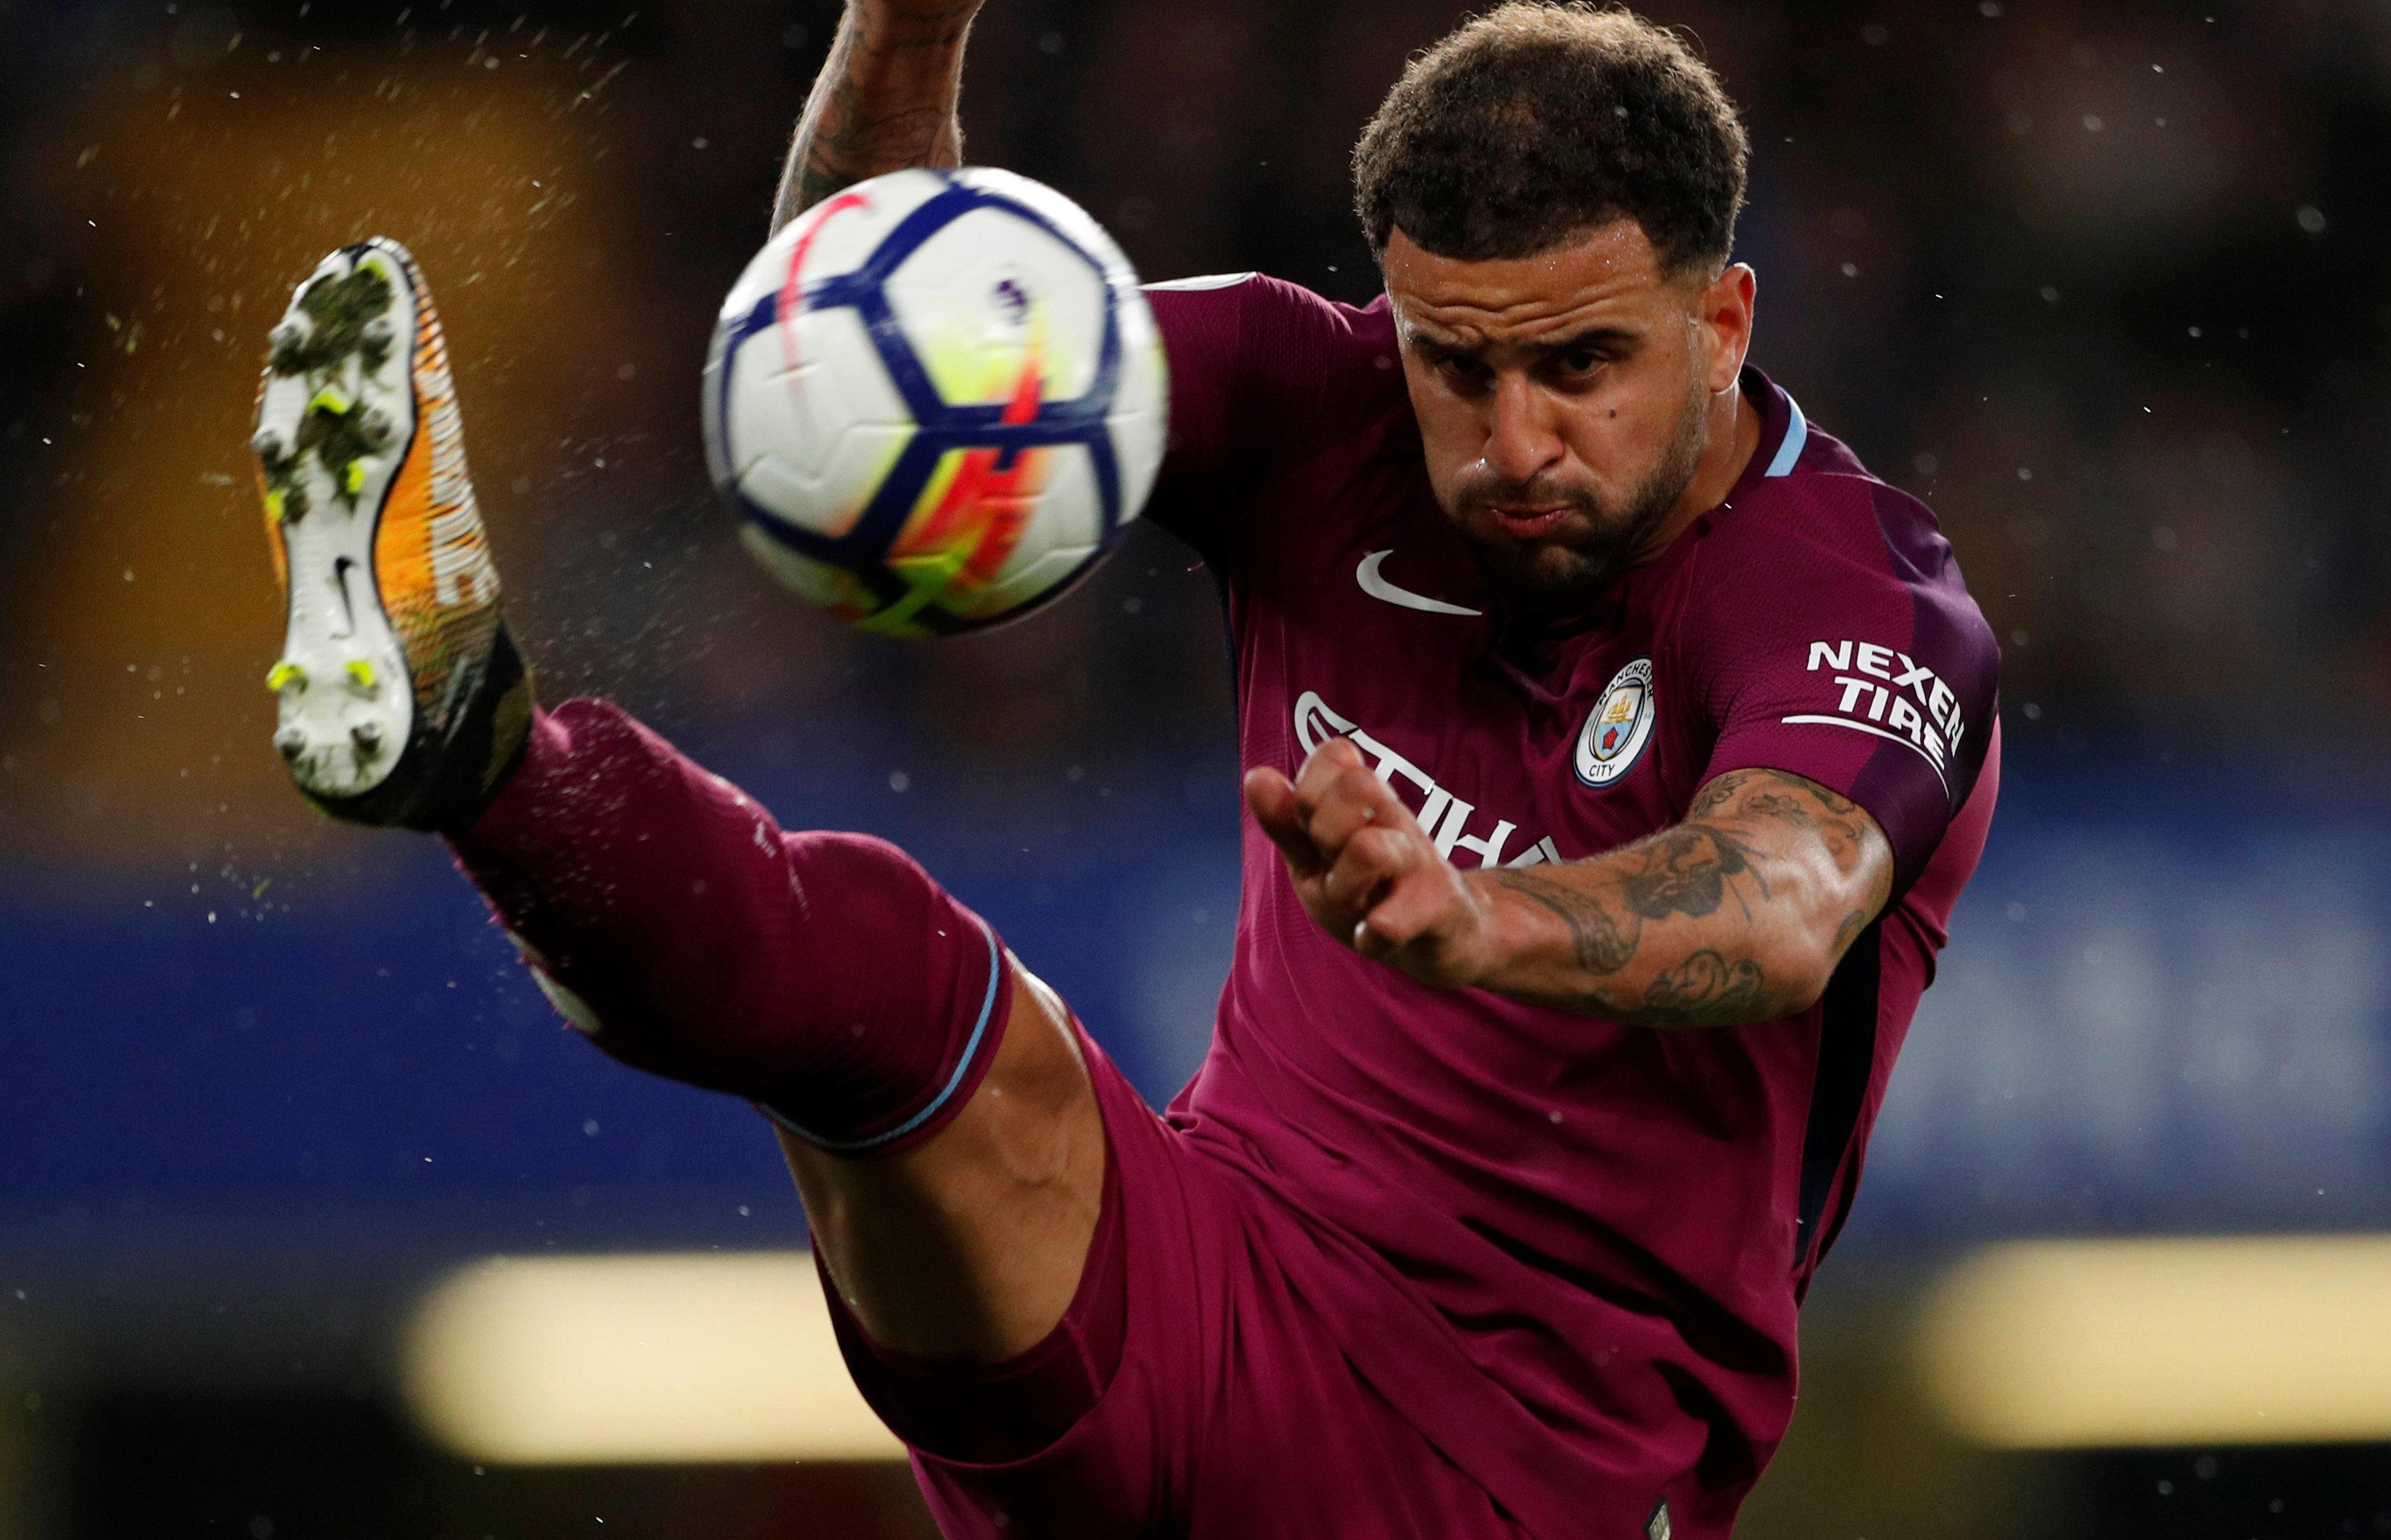 Kyle Walker is flying for Man City this season